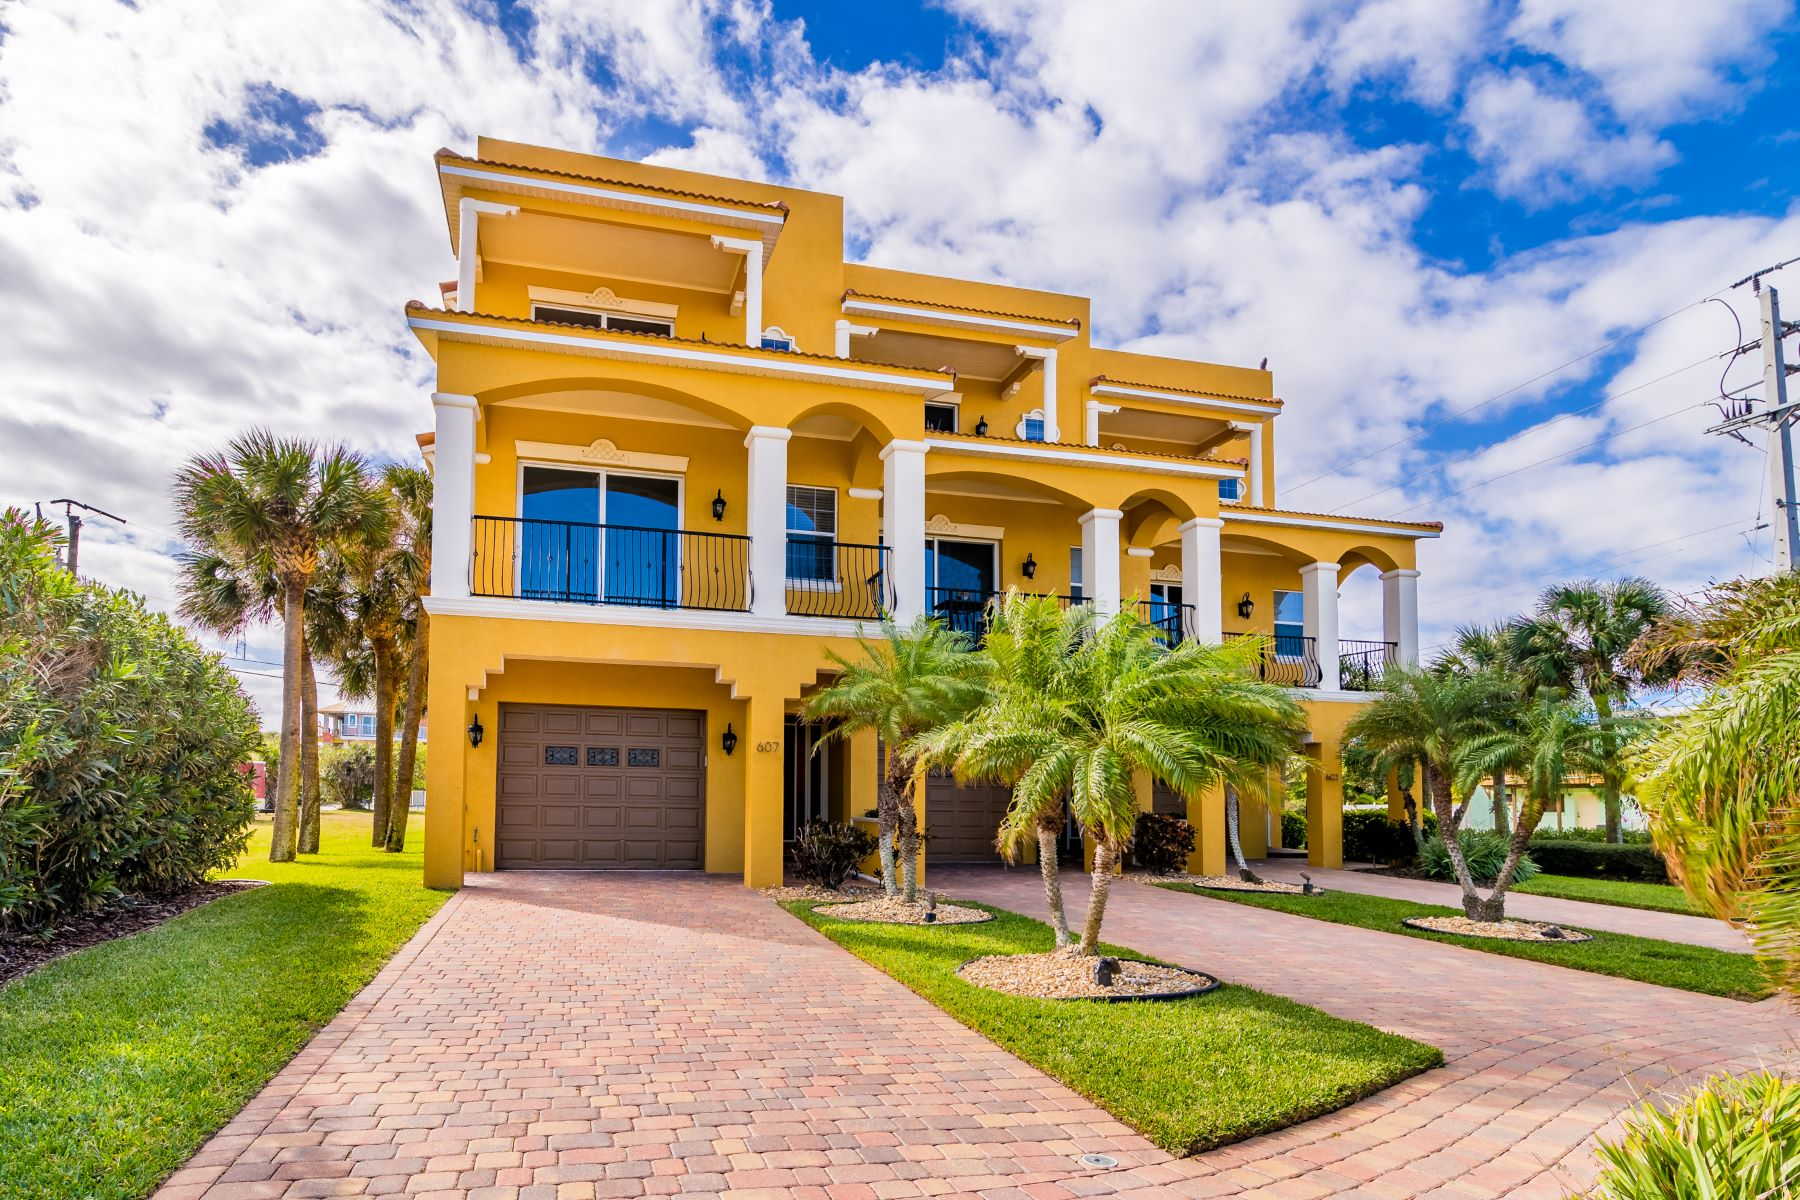 townhouses for Sale at Beautiful Townhouse with Bright, Open Floor Plan 607 Washington Avenue 3 Cape Canaveral, Florida 32920 United States